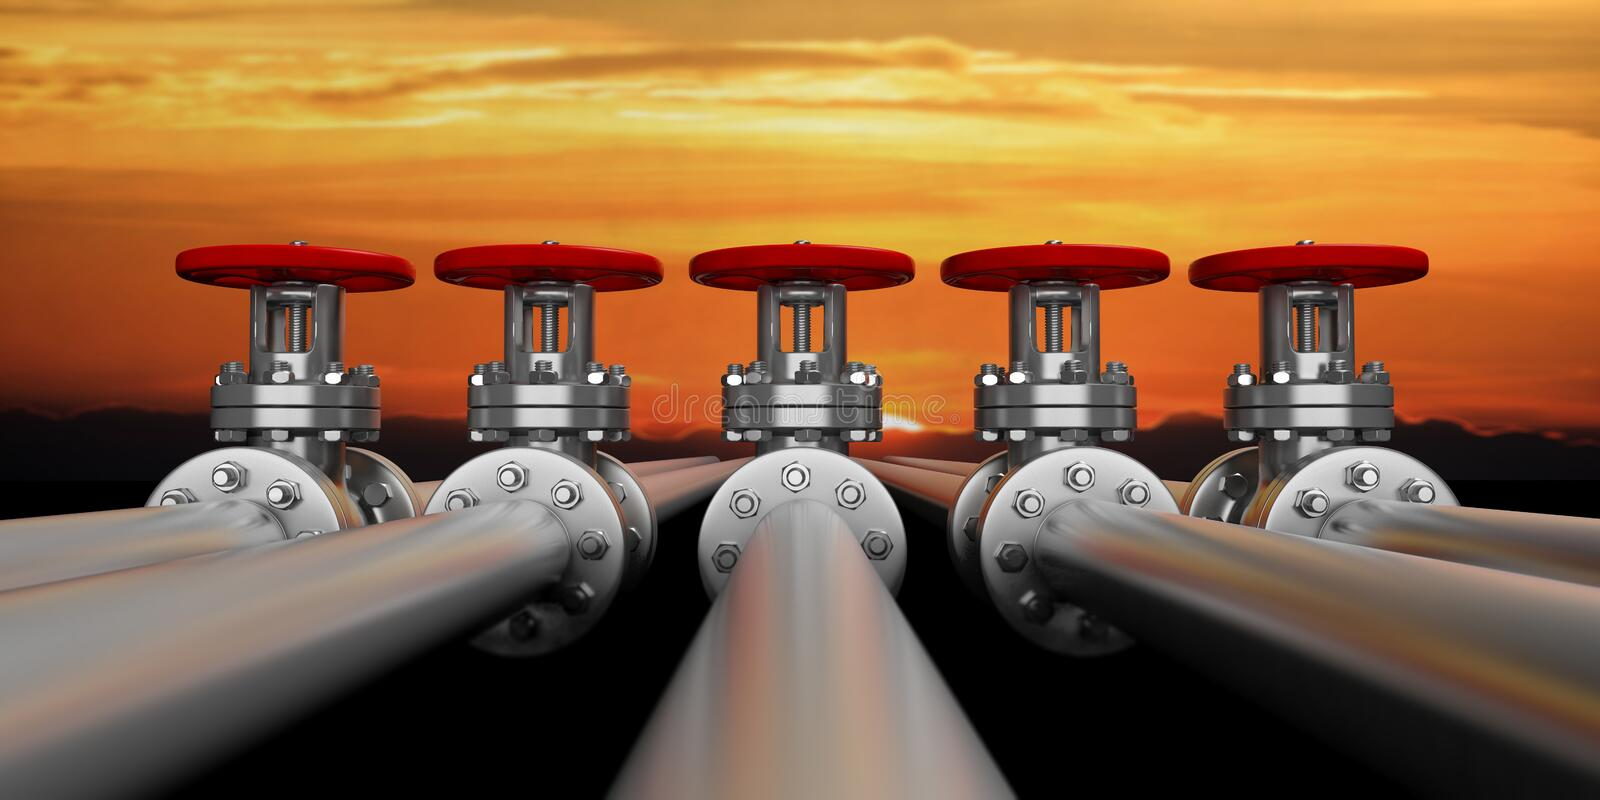 Industrial pipelines and valves on sky at sunset background, banner. 3d illustration stock illustration